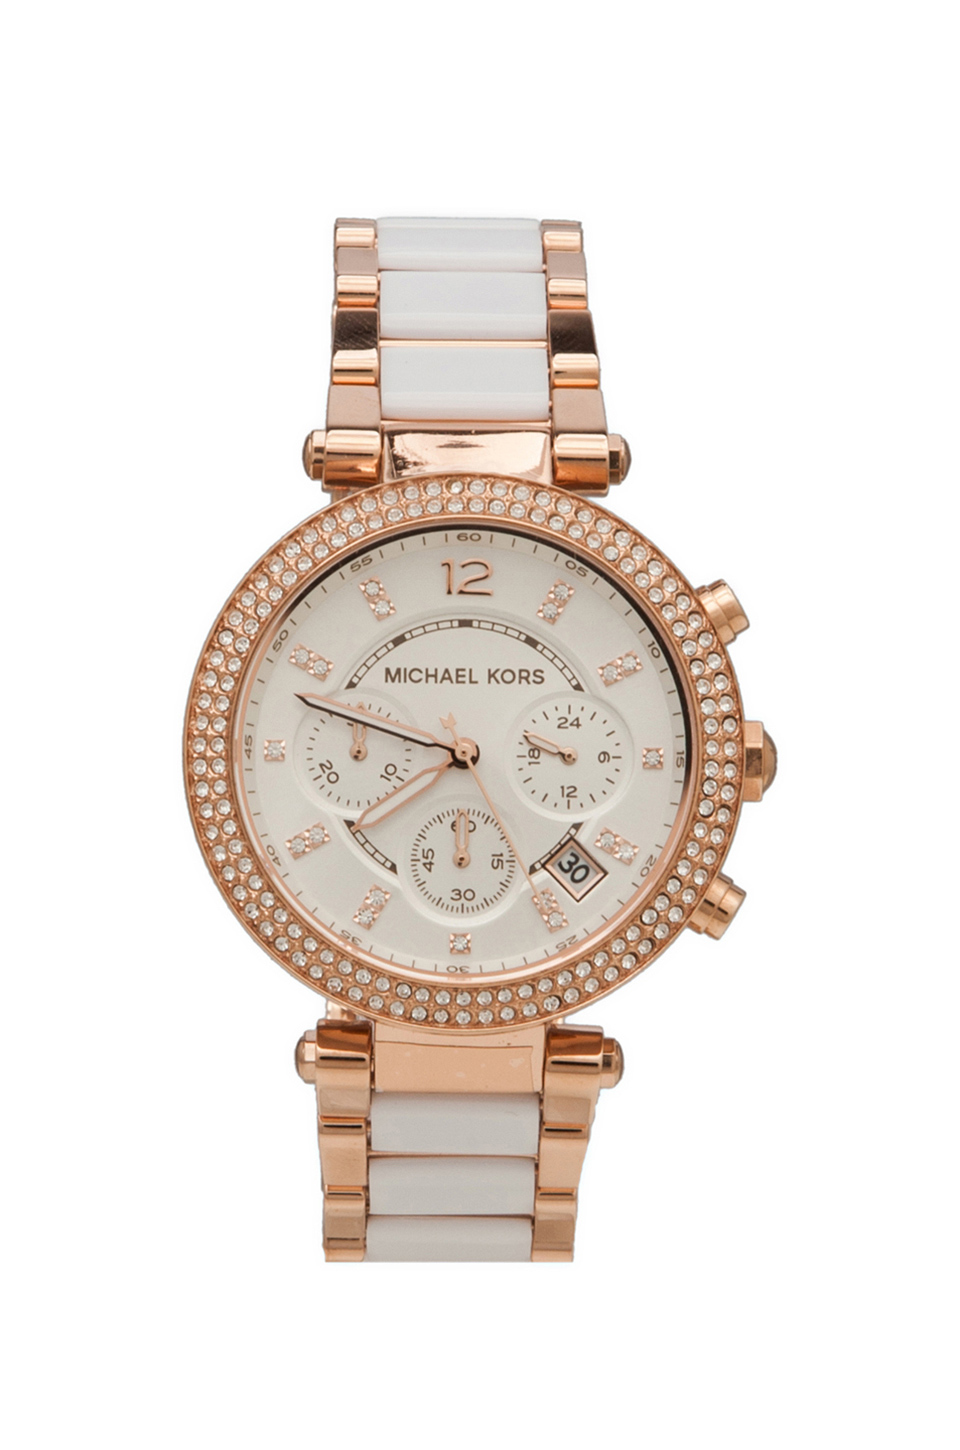 Michael Kors Parker Watch in Rosegold & White